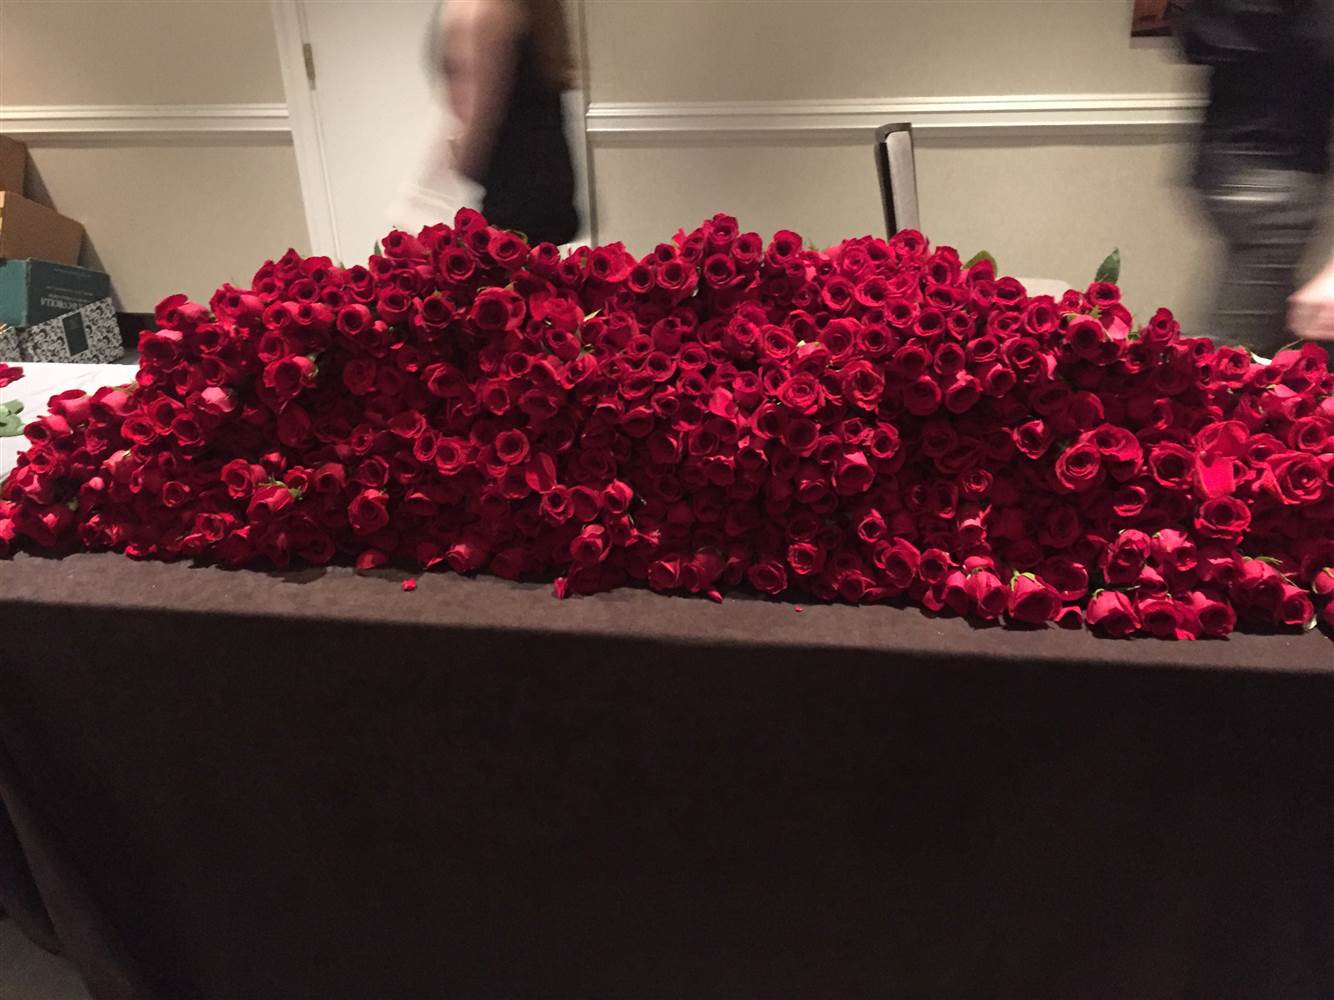 FLOWER POWER: Somebody Just Sent Hillary Clinton 1,000 Flowers! image